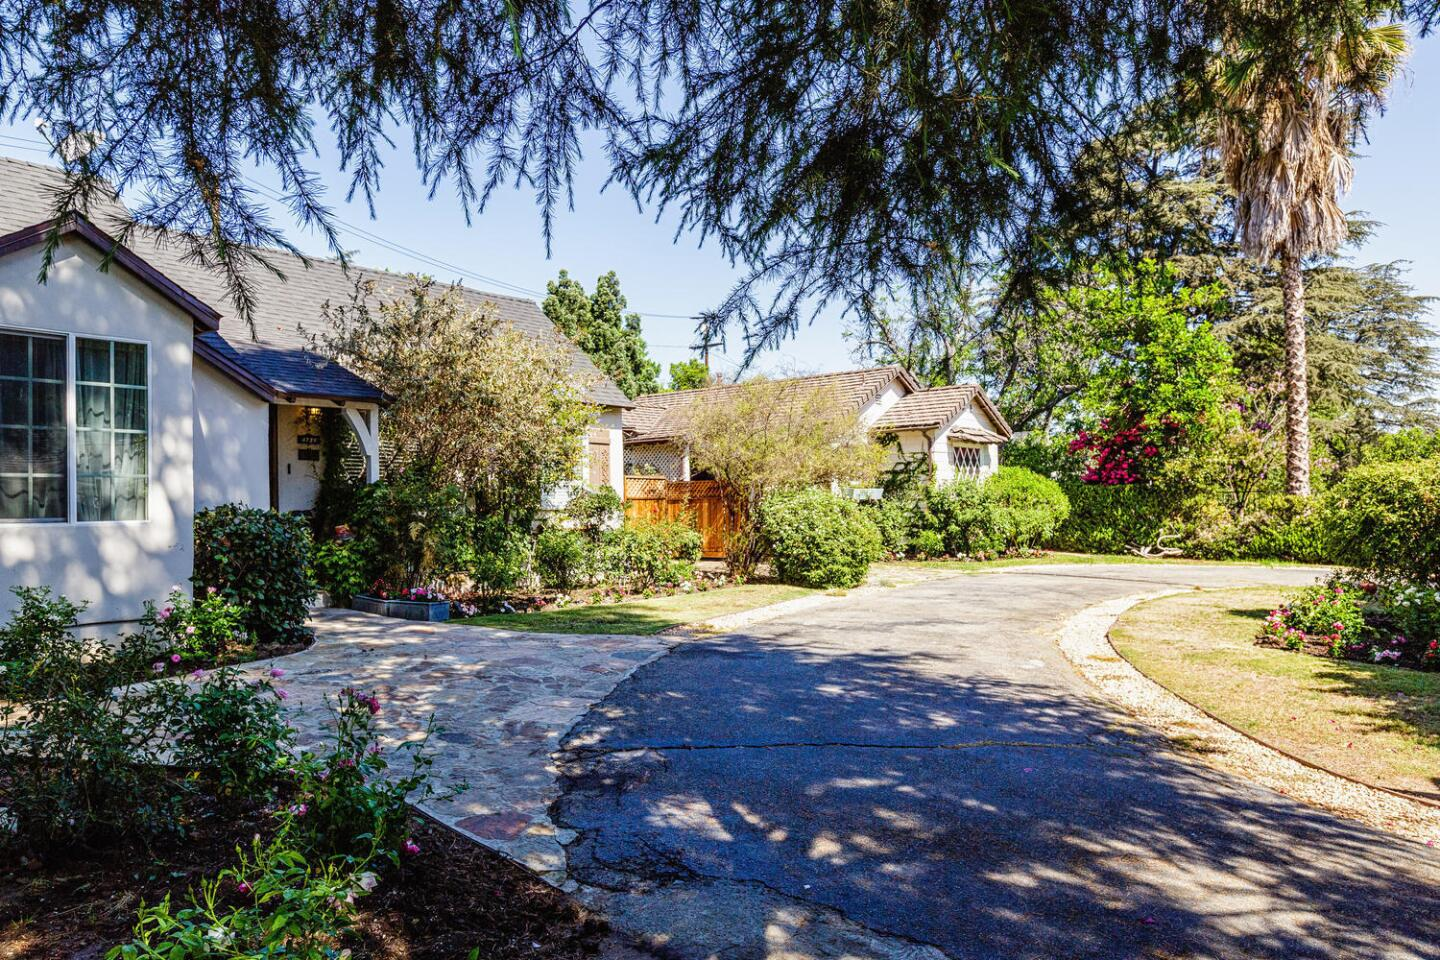 Bill Champlin's Sherman Oaks home and recording studio | Hot Property